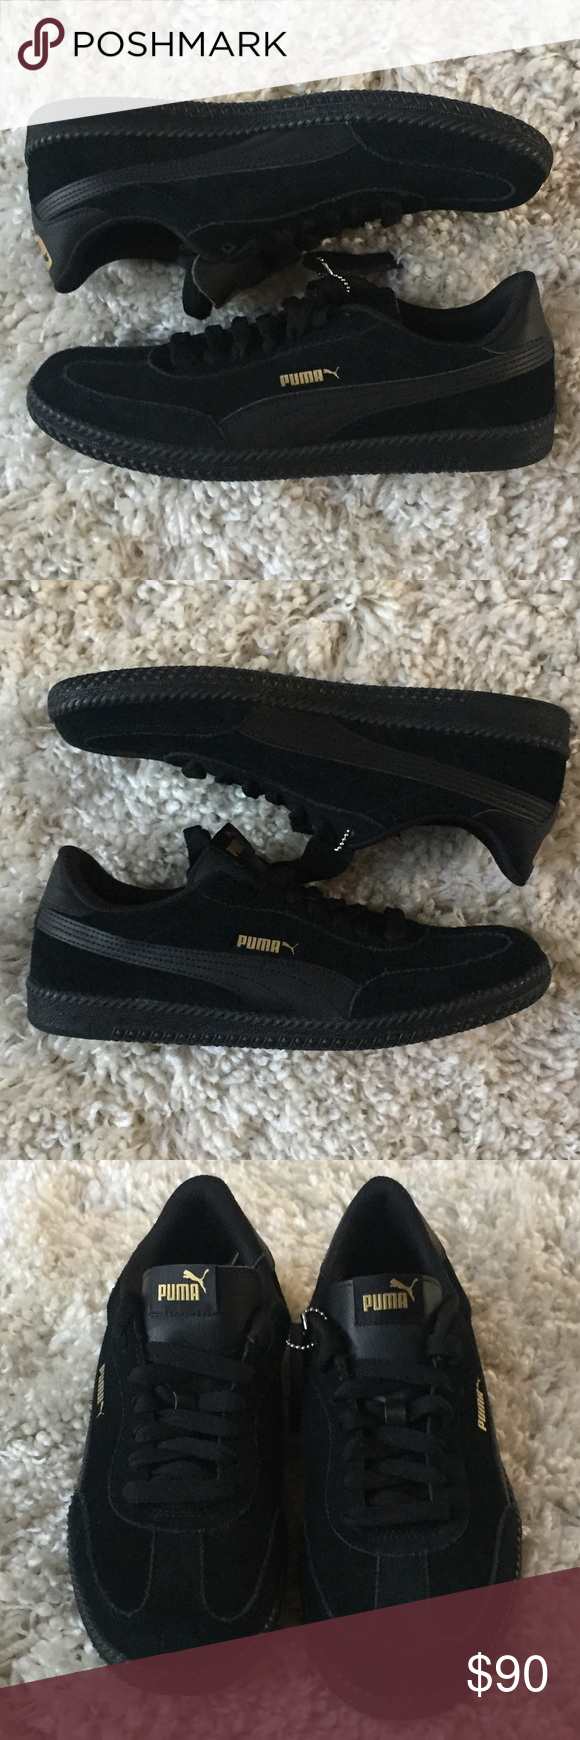 online store 14415 411ba Puma Astro Cup Lifestyle Soccer 36442305 Suede 10 Selling a ...